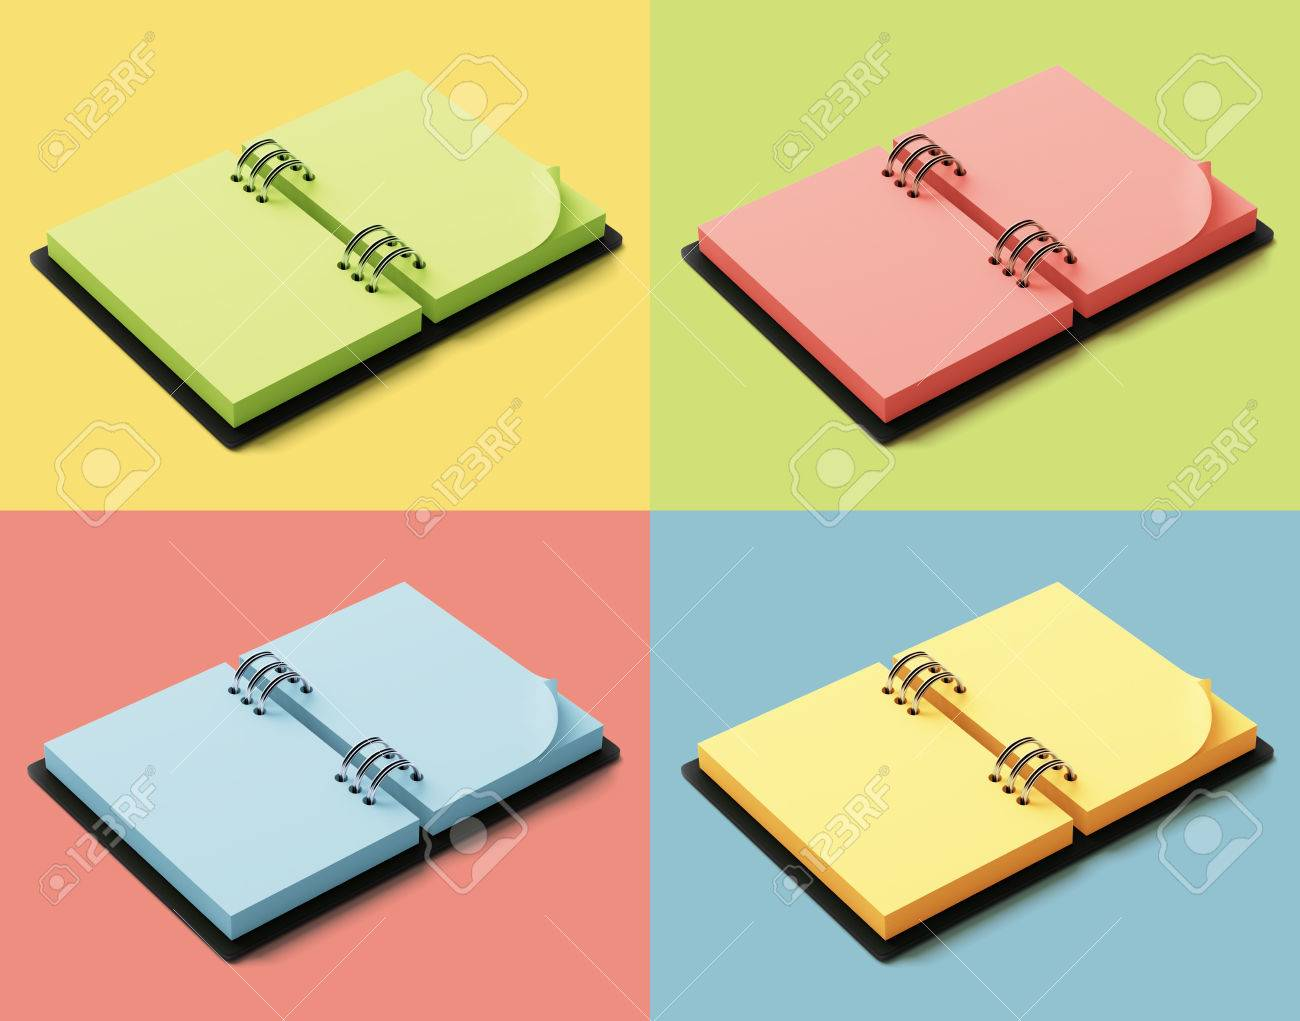 Agenda With Colorful Pages Isolated On Colorful Background Stock